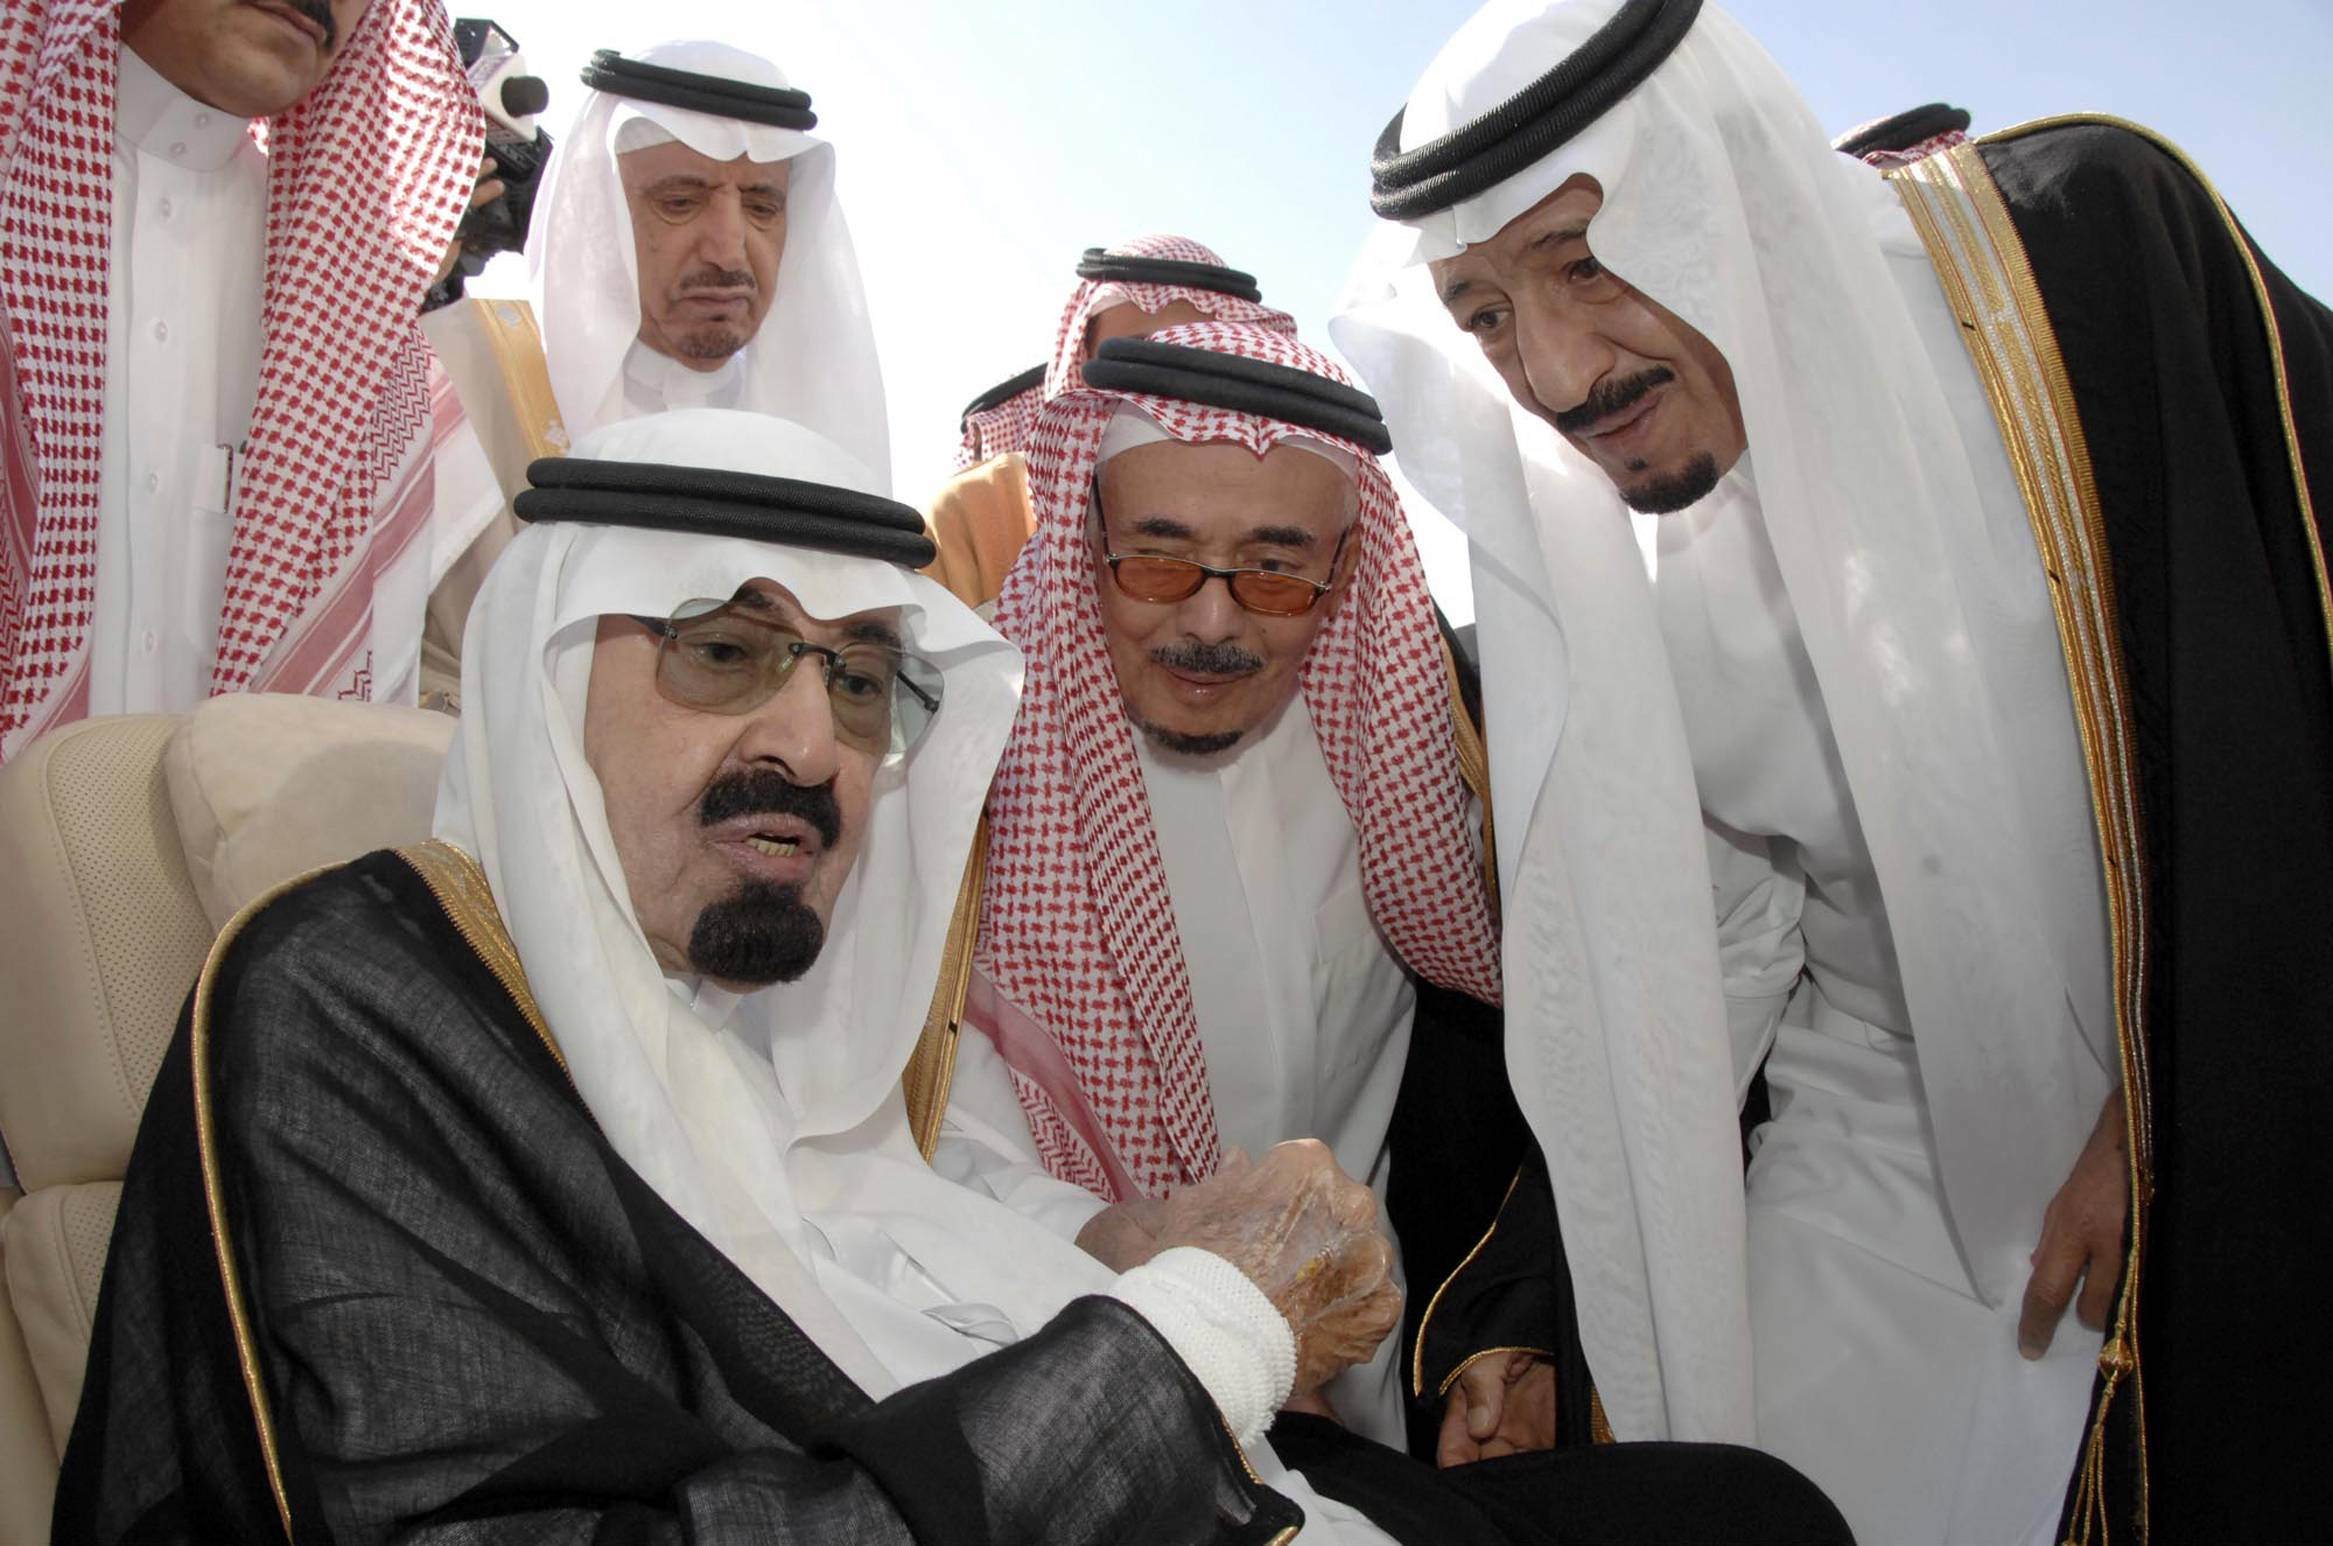 Saudi Arabia's King Abdullah, left, speaks with Prince Salman, the Saudi King's brother and Riyadh Governor, right, before the King's departure to United States, in Riyadh, Saudi Arabia.